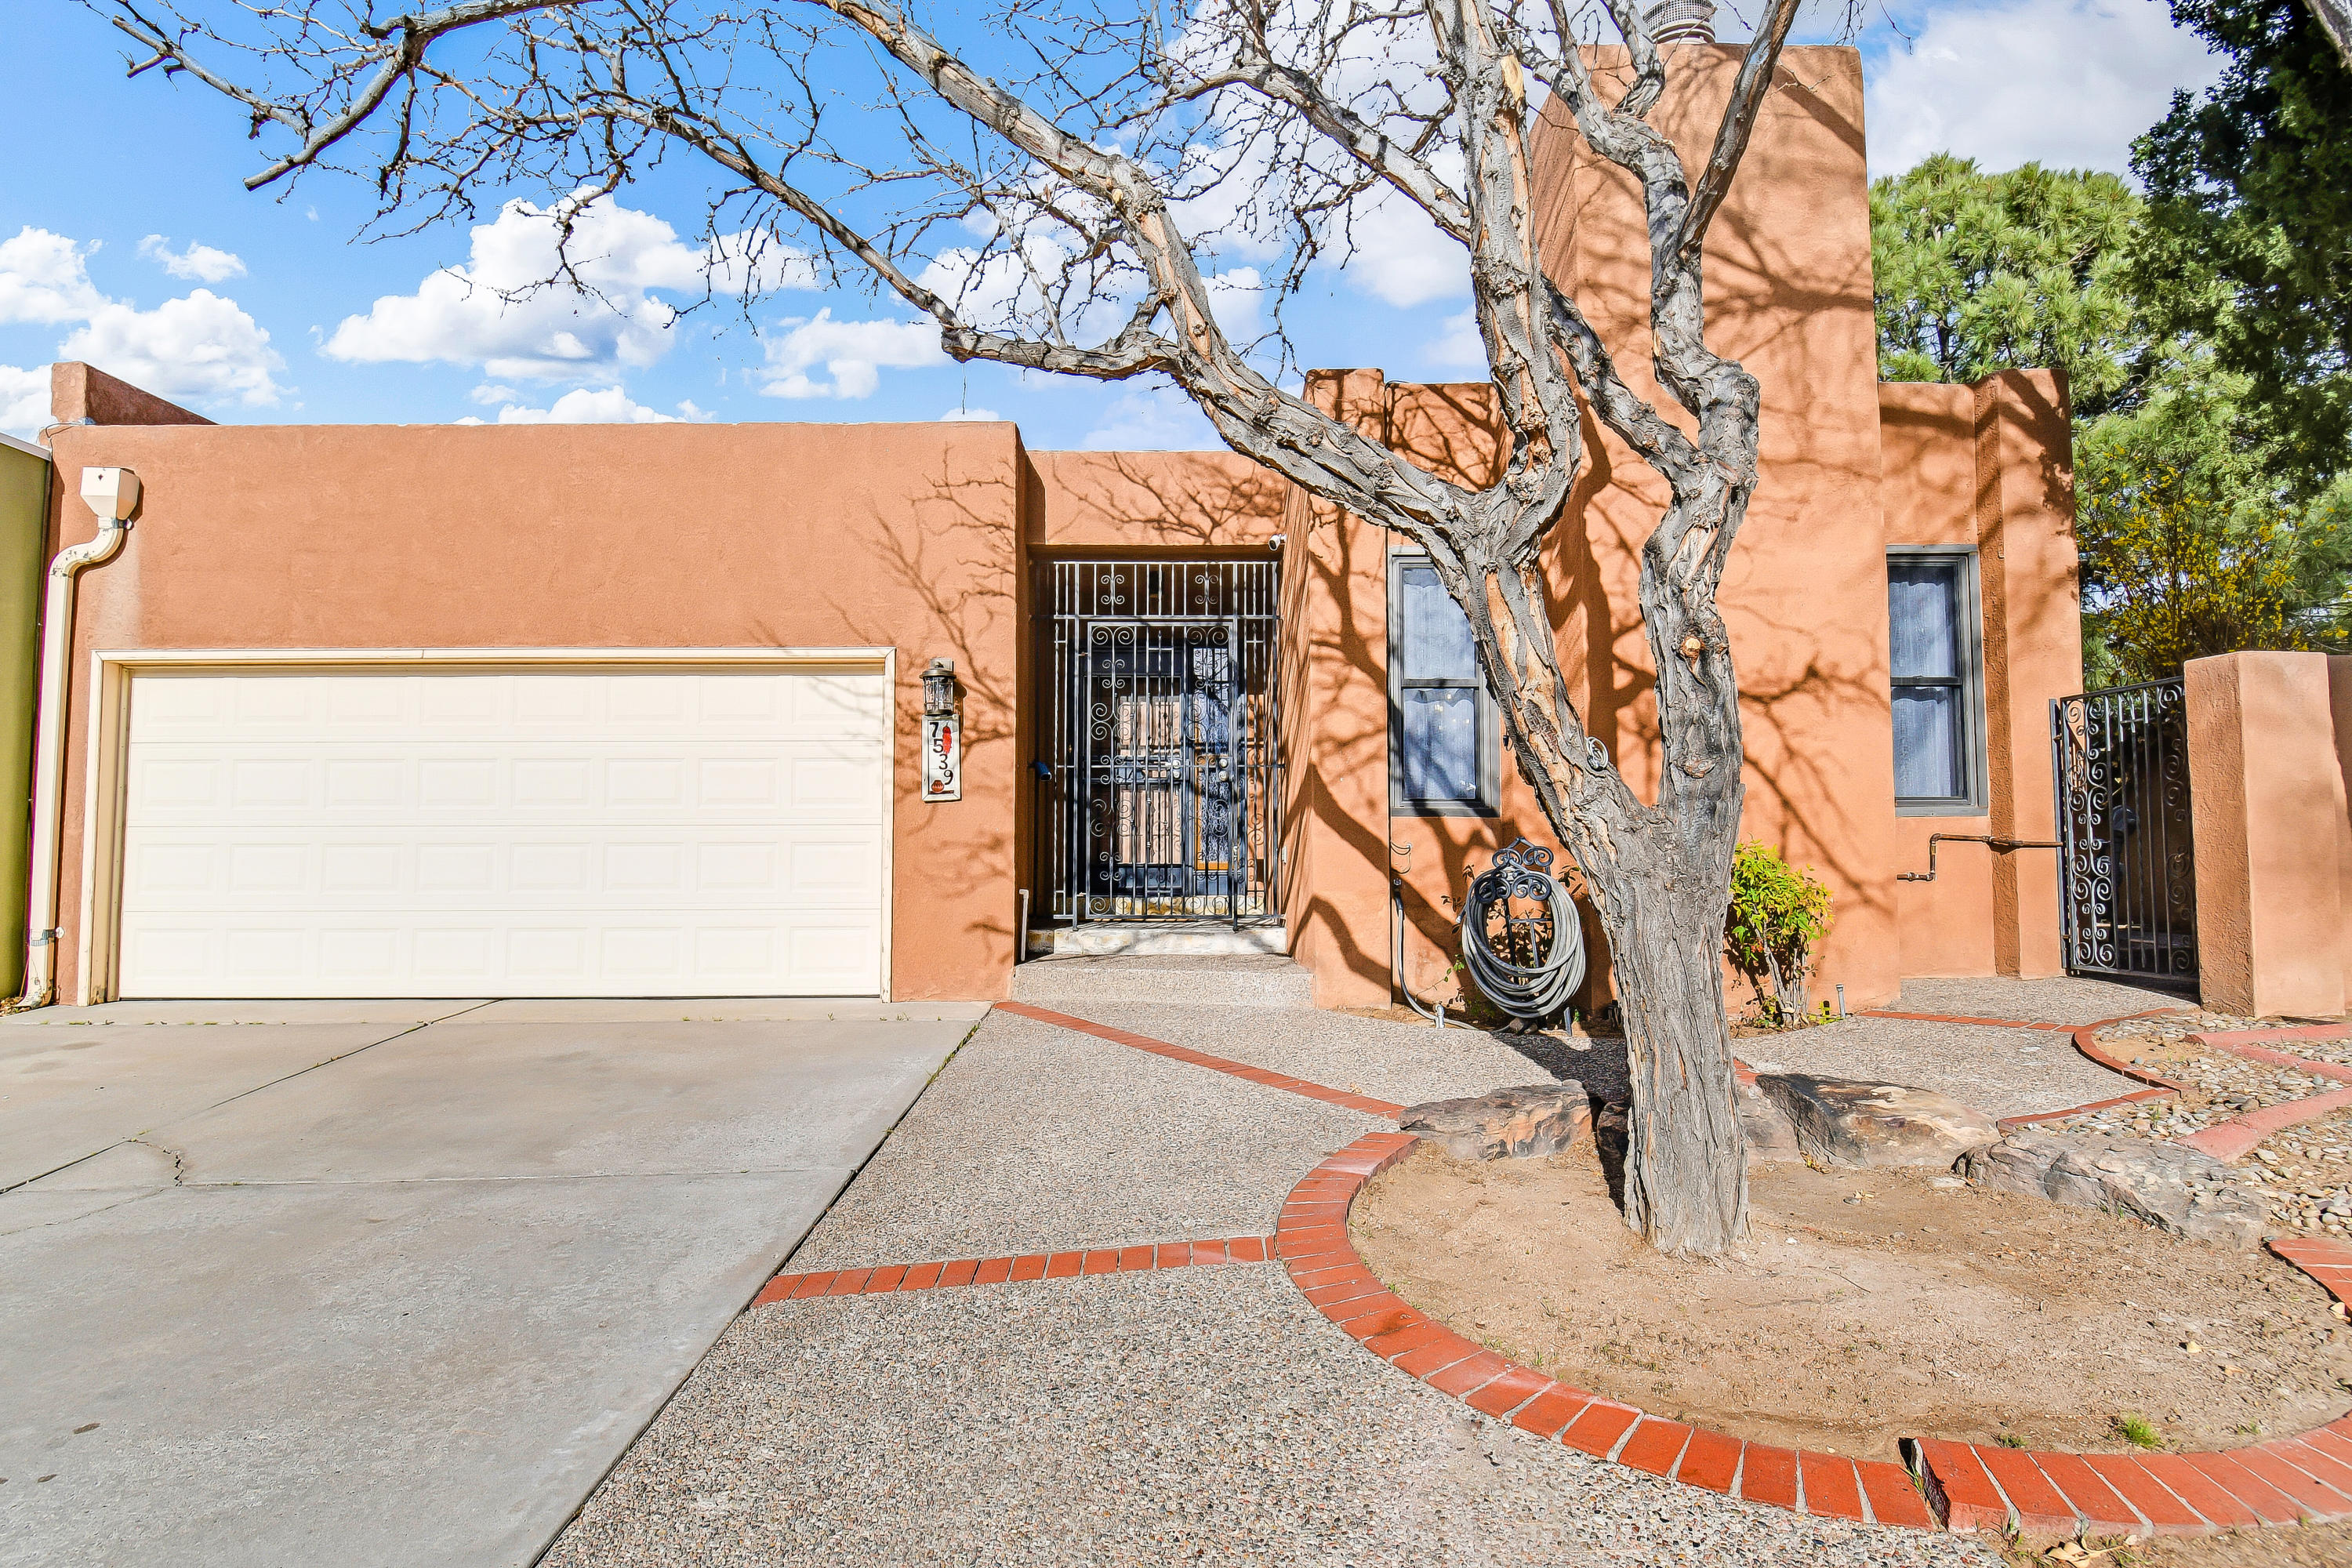 Lovely NorthEast townhome for sale!  Nicely remodeled and ready for a new owner! Location is key, and this gem is right off Wyoming & Academy.  Easy access to Paseo and the Interstates, and is in Sandia High School district.  3 big bedrooms, high ceilings throughout, and 1.75 baths! New kitchen cabinets, quartz countertops, and butcher block accents make the kitchen a fabulous place to cook, and entertain.  Wine fridge, and newer kitchen appliances stay! Lighting in the home is classy, and all new! Green courtyard is perfect place for morning coffee or evening wine! Views of the Sandias should not be overlooked while visiting.  This won't last long, so get your showing set!  All offers to be reviewed Monday morning, March 29th.